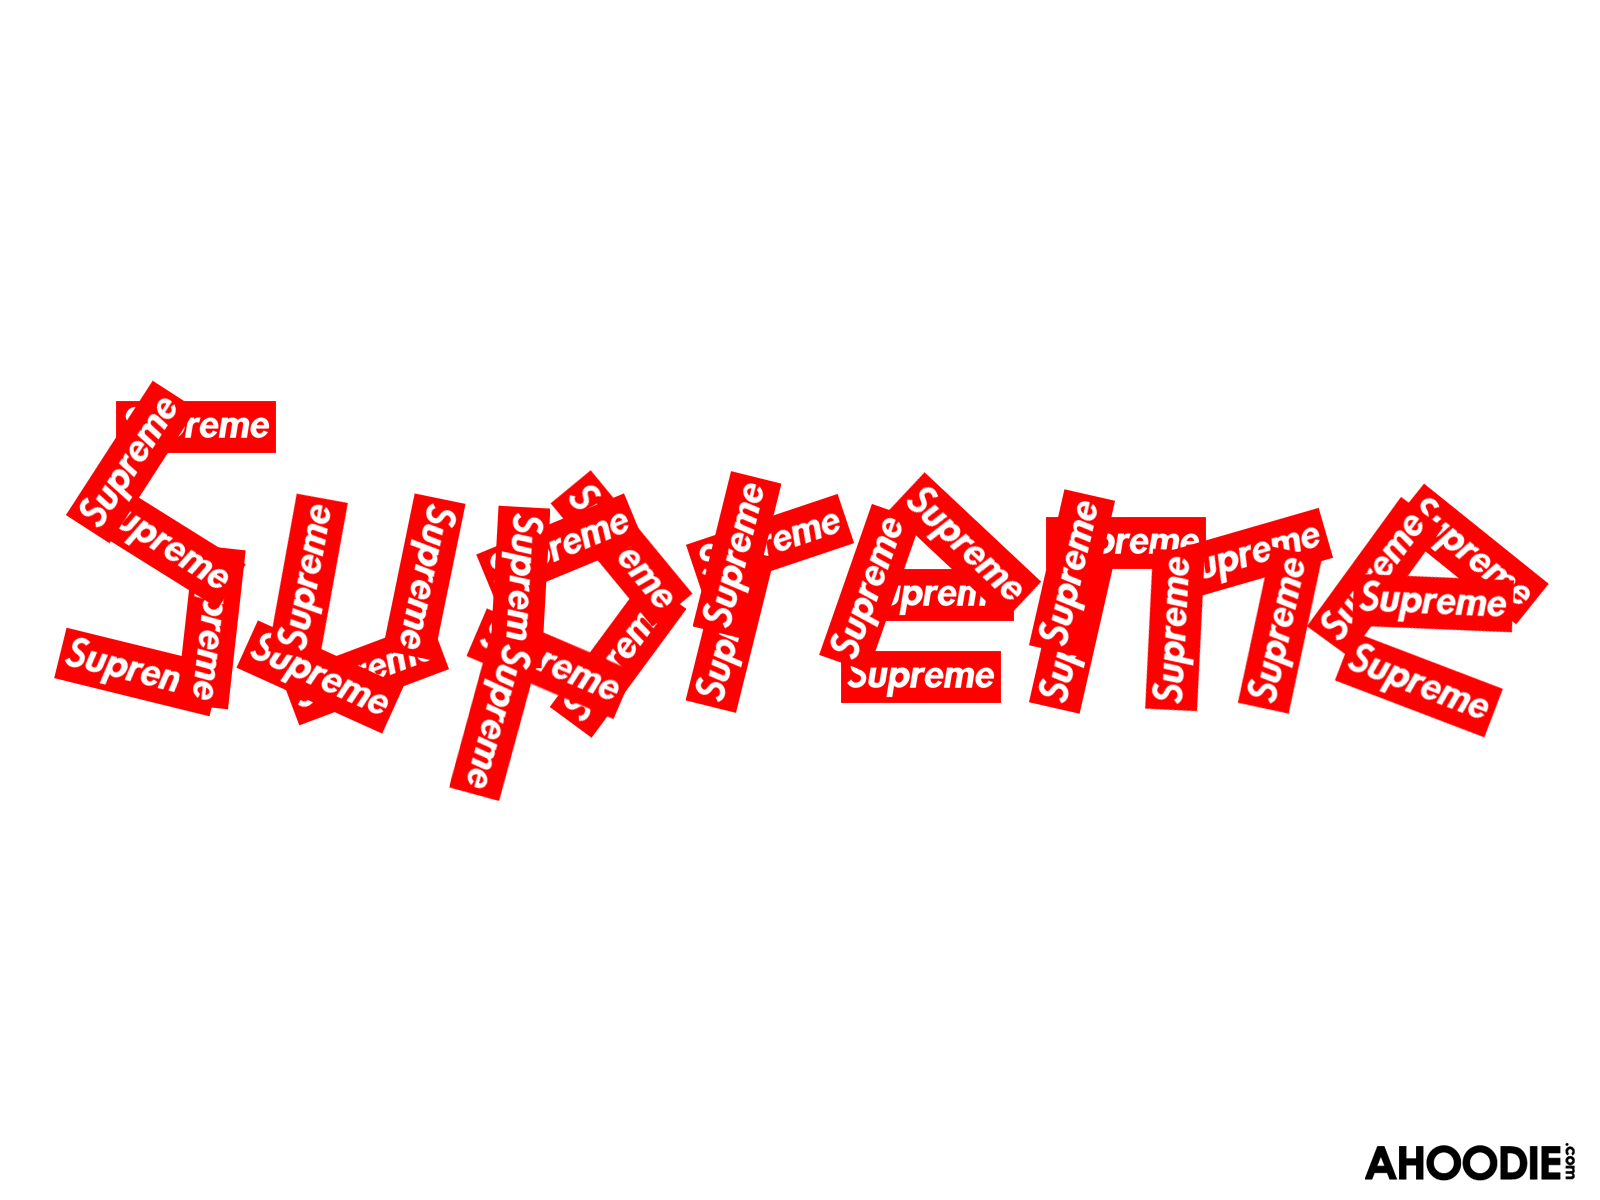 Supreme Tumblr Background Images Pictures   Becuo 1600x1200